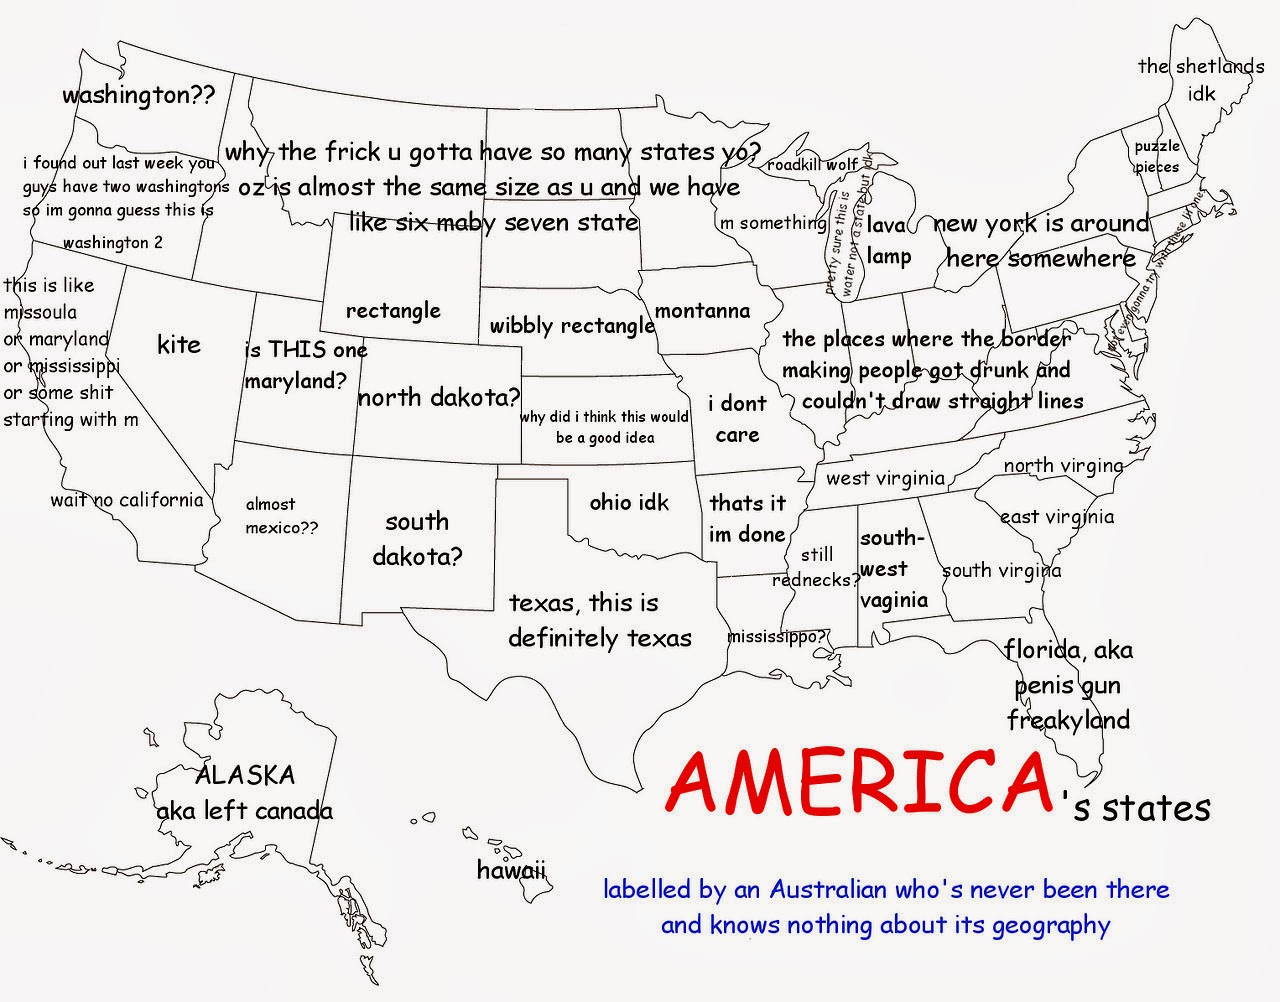 america according to an australian who s never been here before